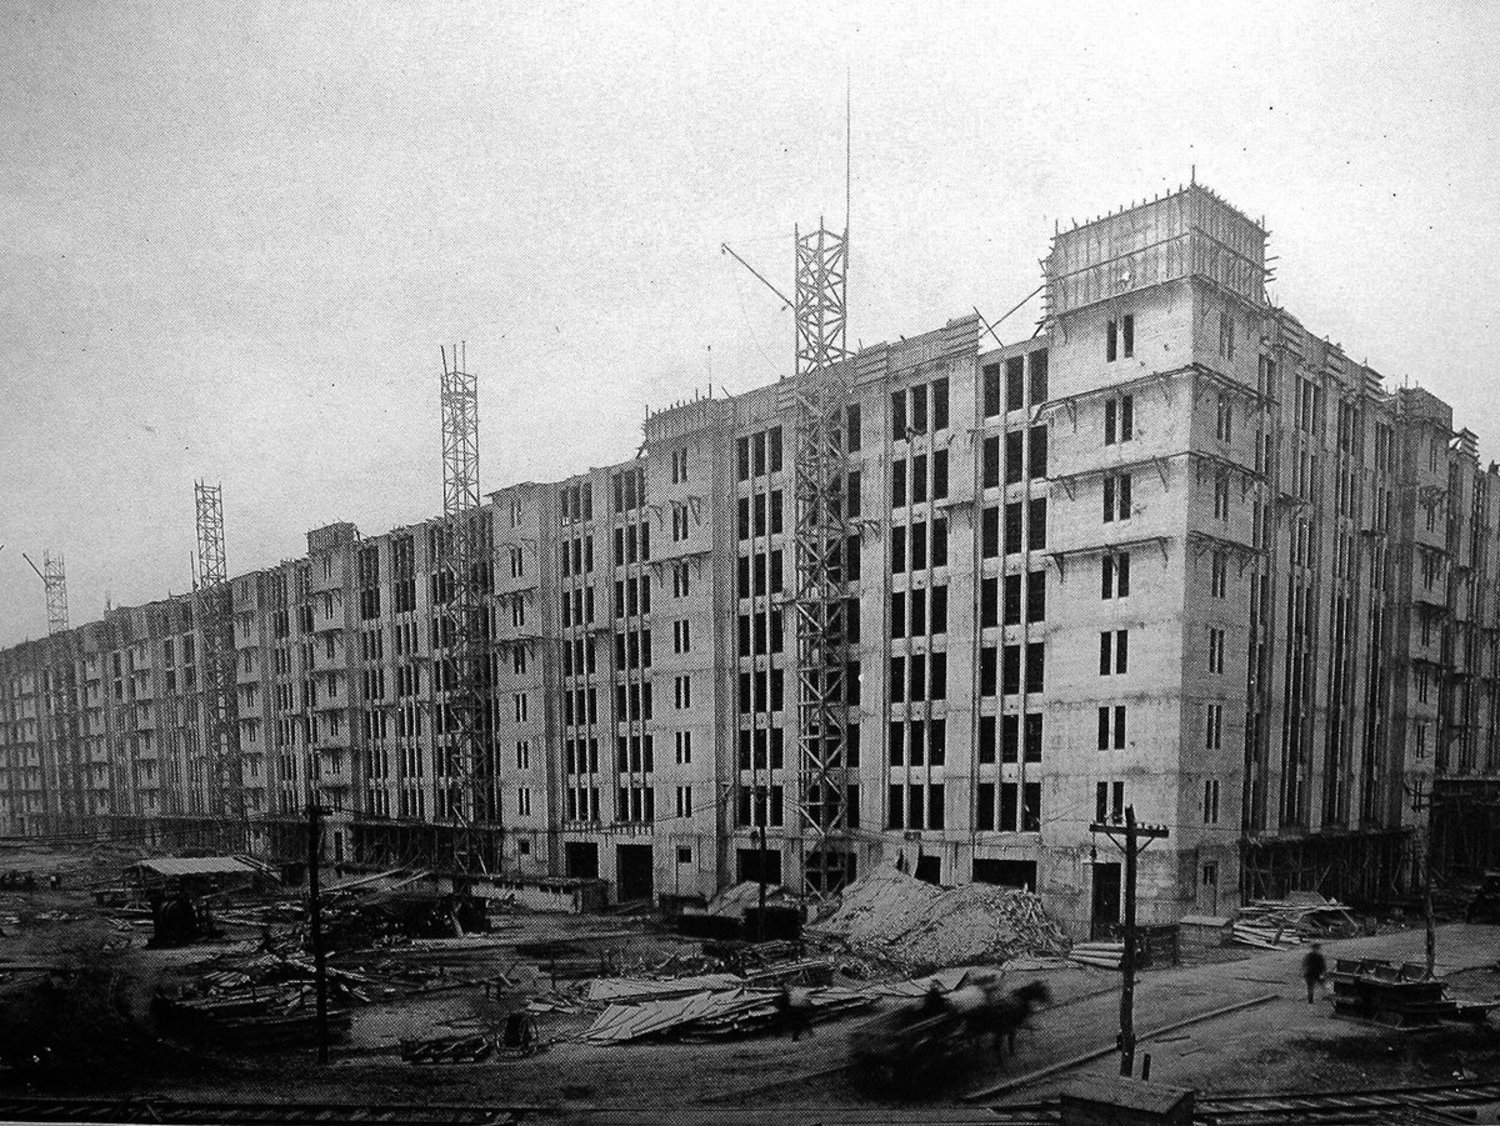 The complex was first commissioned in 1918 to help move supplies and soldiers for the US war effort in Europe. It wasn't finished until 1919, 10 months after the war ended. At the time, it was the largest reinforced concrete building in the world. Here's what it looked like then.